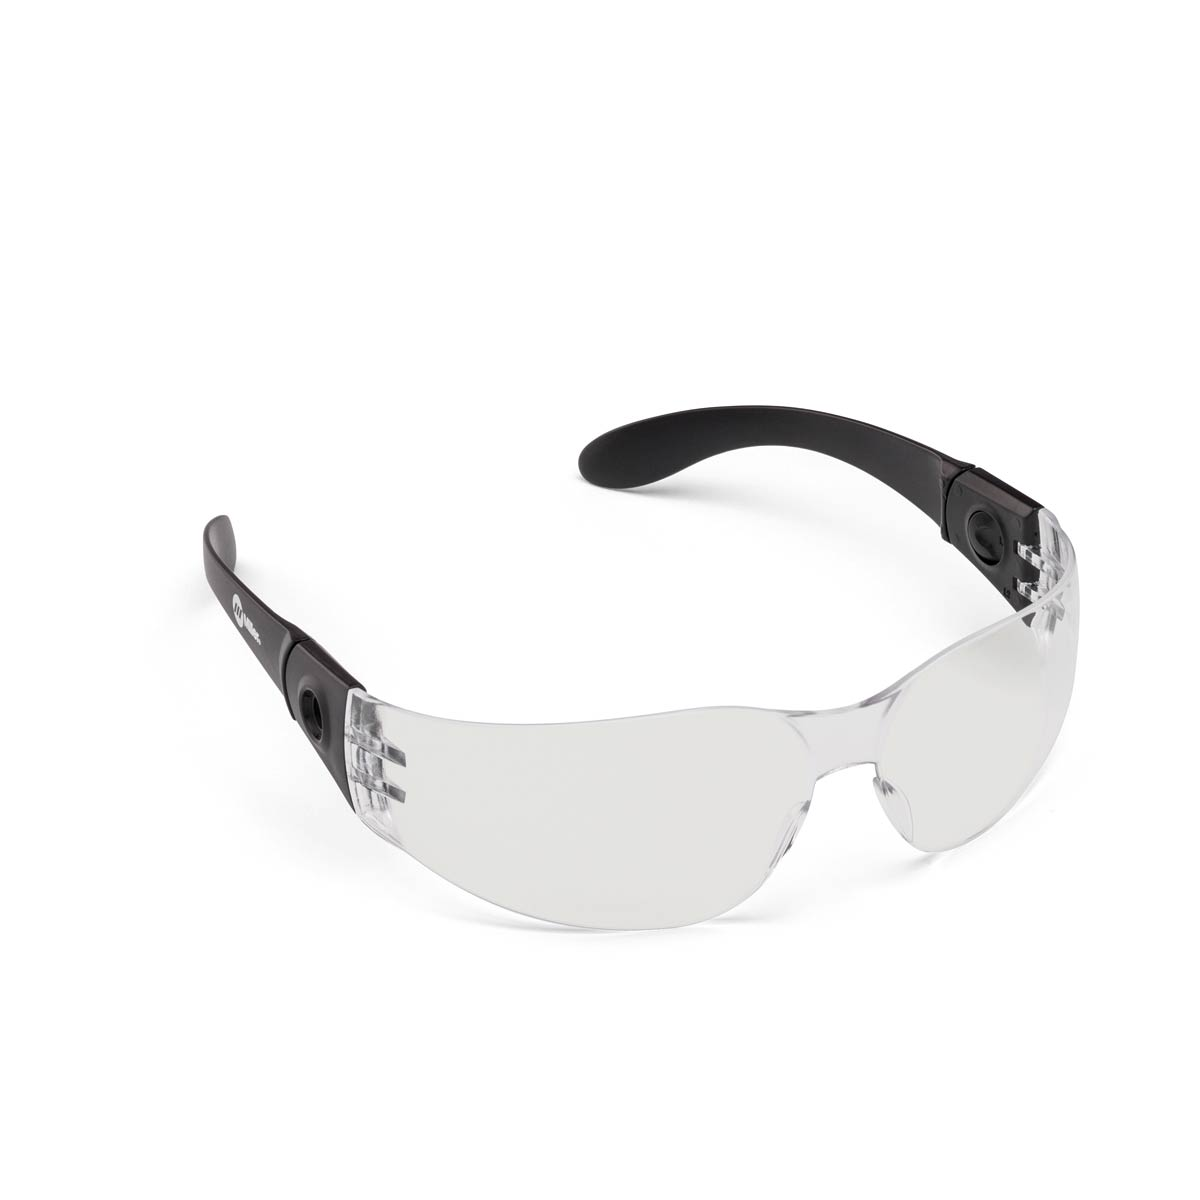 SAFETY GLASSES CLASSIC CLEAR. Part: 272187. Pack: 1